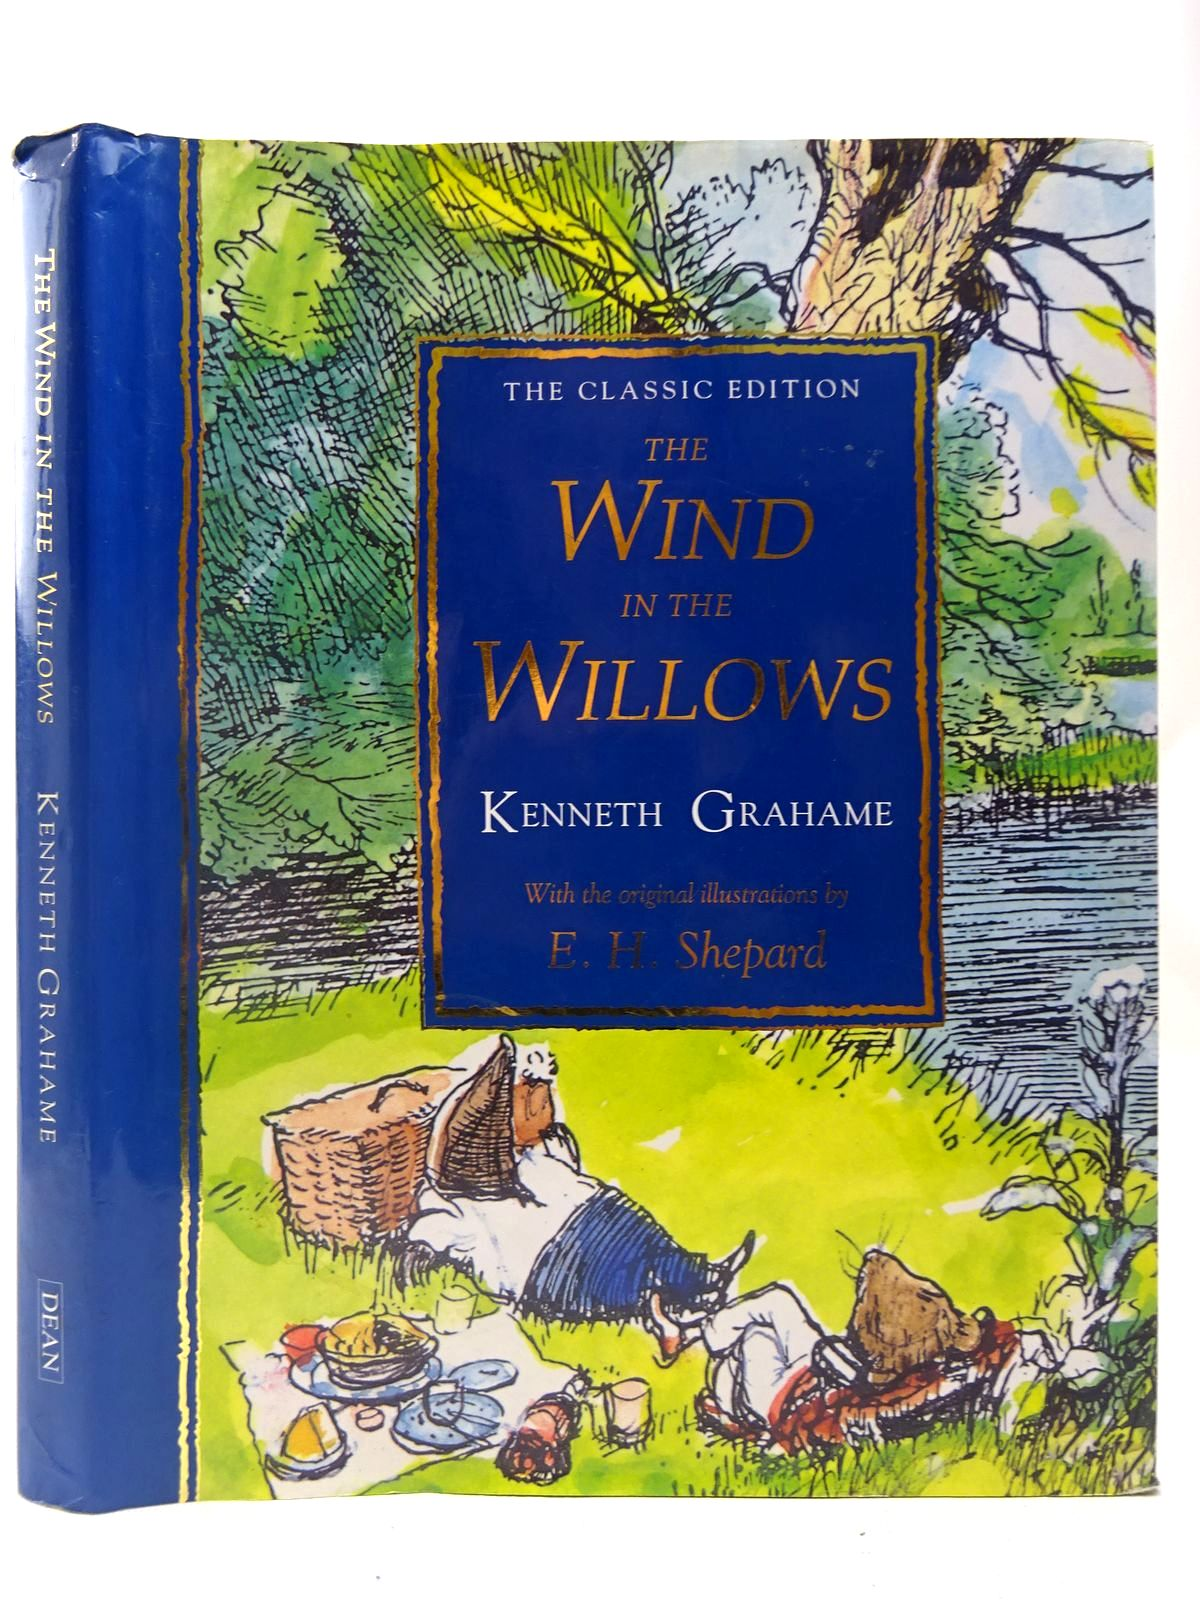 Photo of THE WIND IN THE WILLOWS - THE CLASSIC EDITION written by Grahame, Kenneth illustrated by Shepard, E.H. published by Dean (STOCK CODE: 2126988)  for sale by Stella & Rose's Books